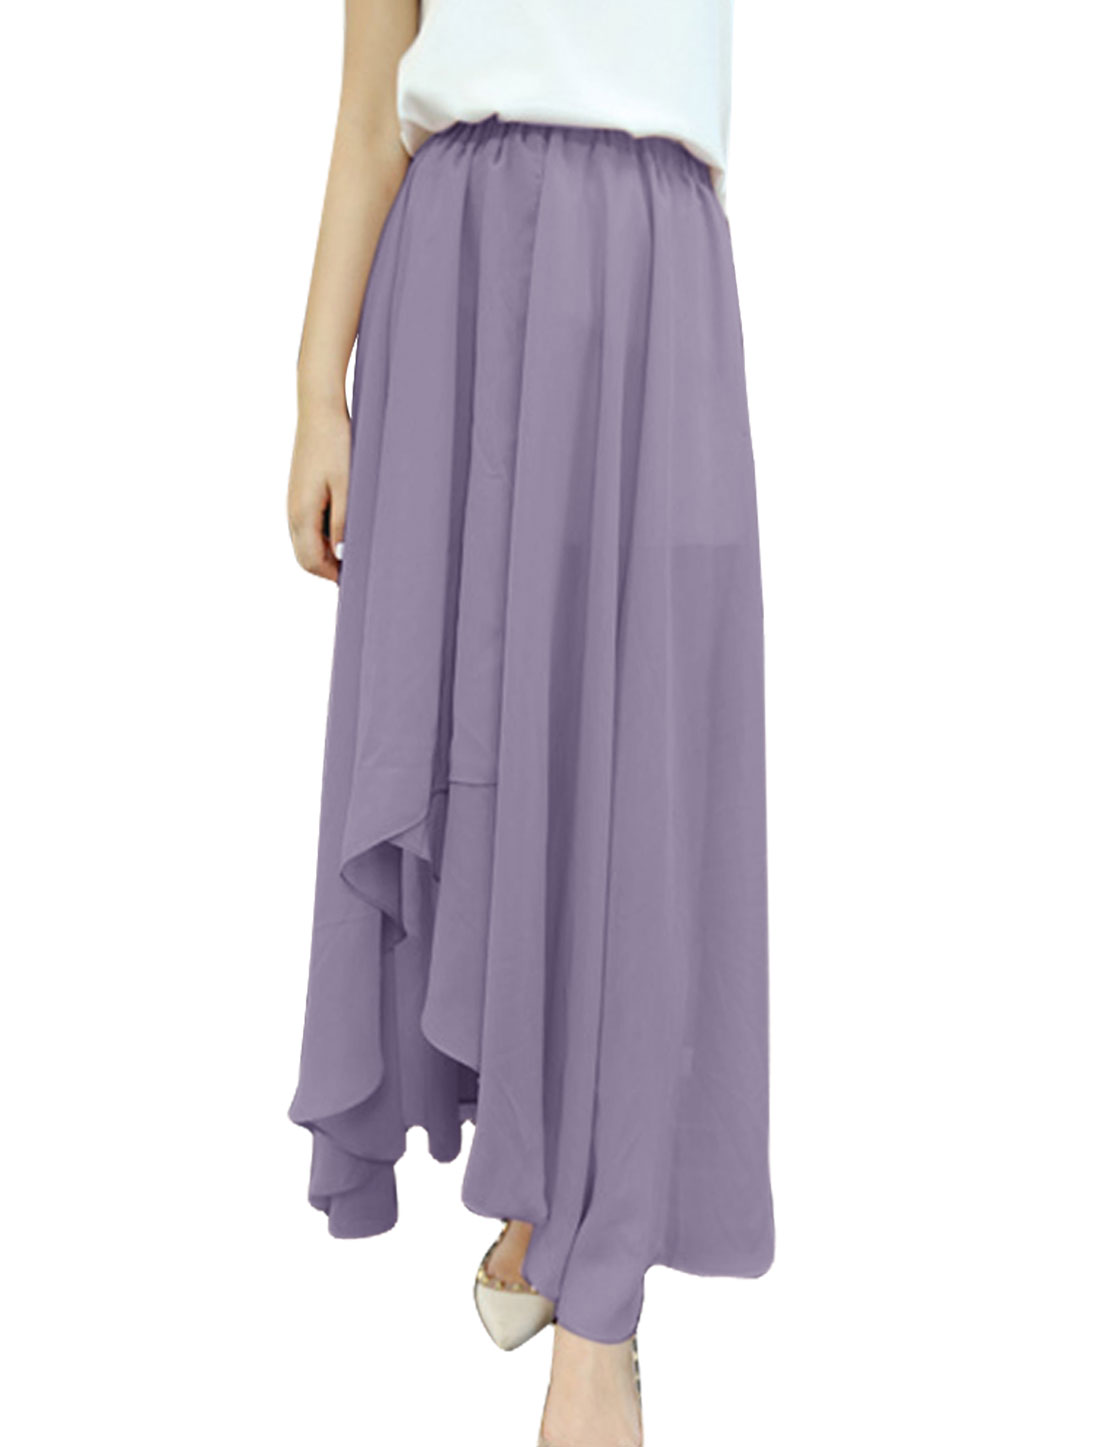 Stylish Ladies Light Purple Asymmetric Hem Casual Chiffon Long Skirt XS